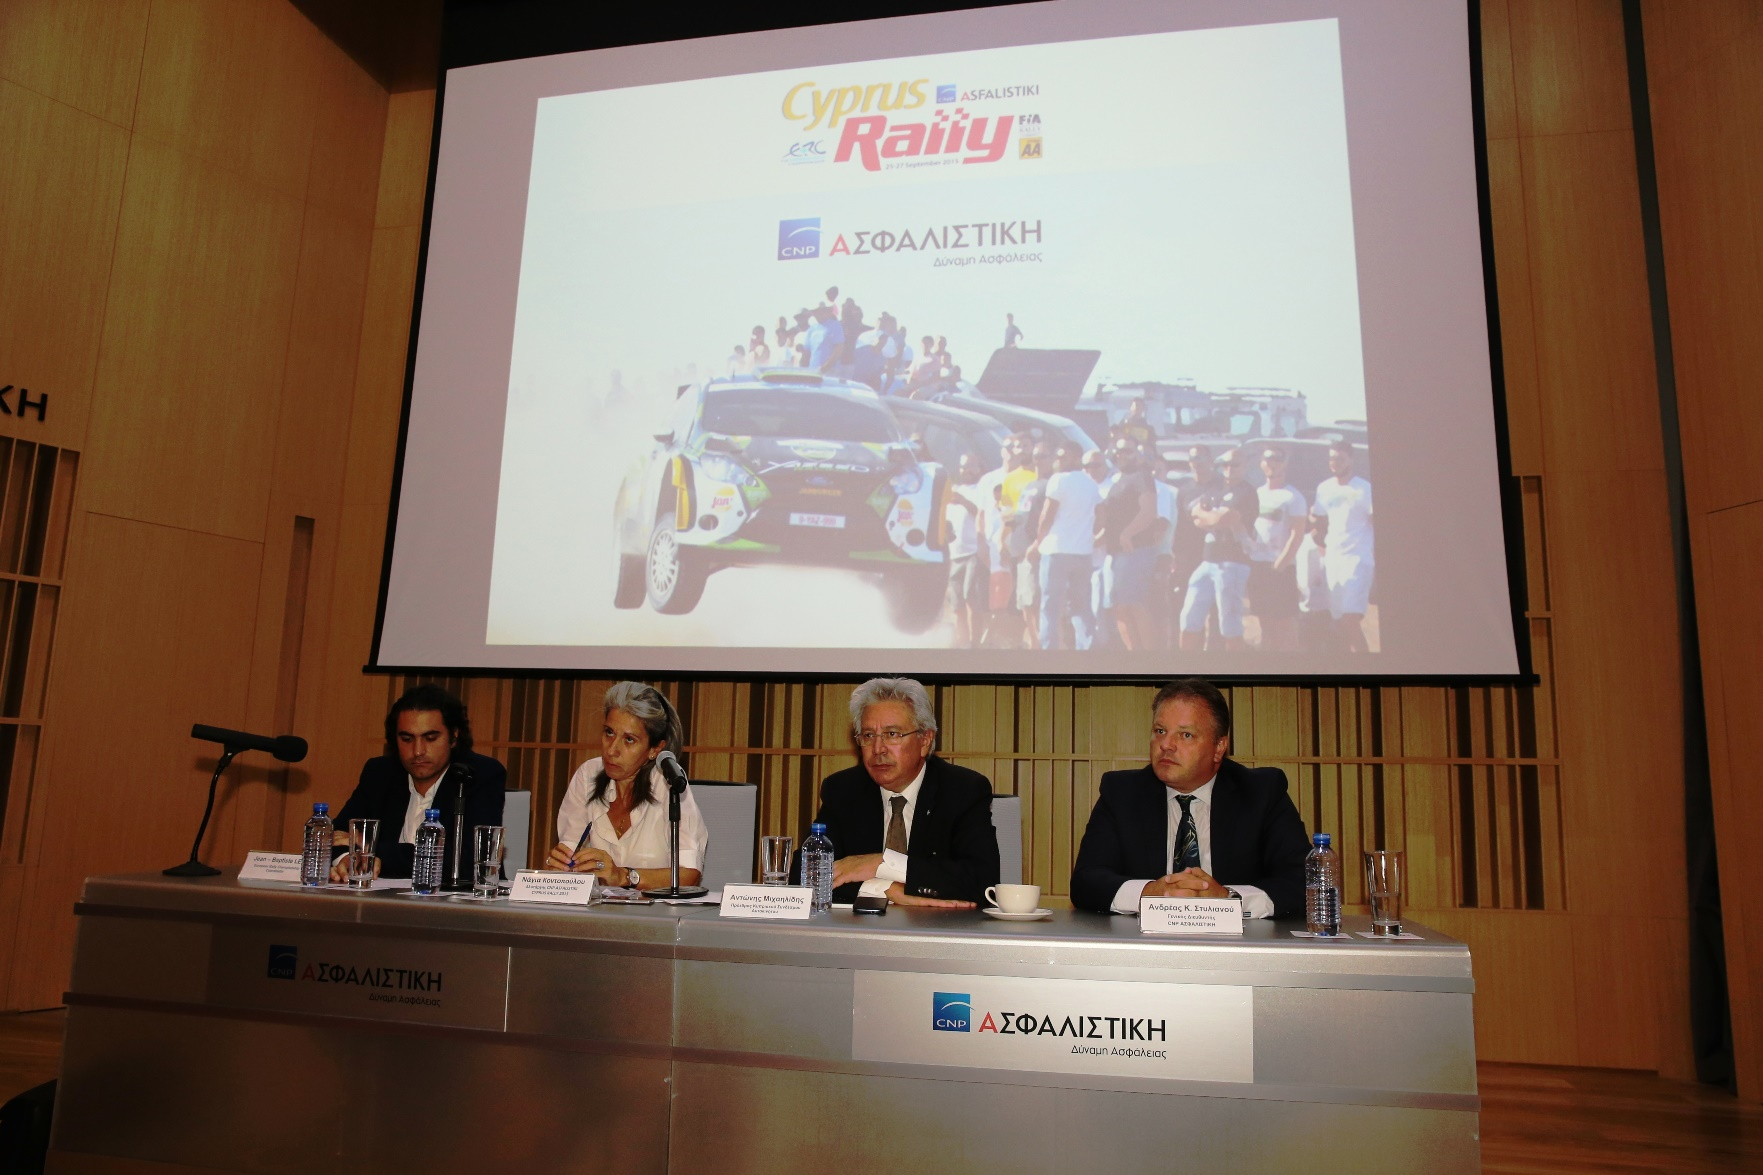 CNP ASFALISTIKI CYPRUS RALLY 2015, PRESS CONFERENCE